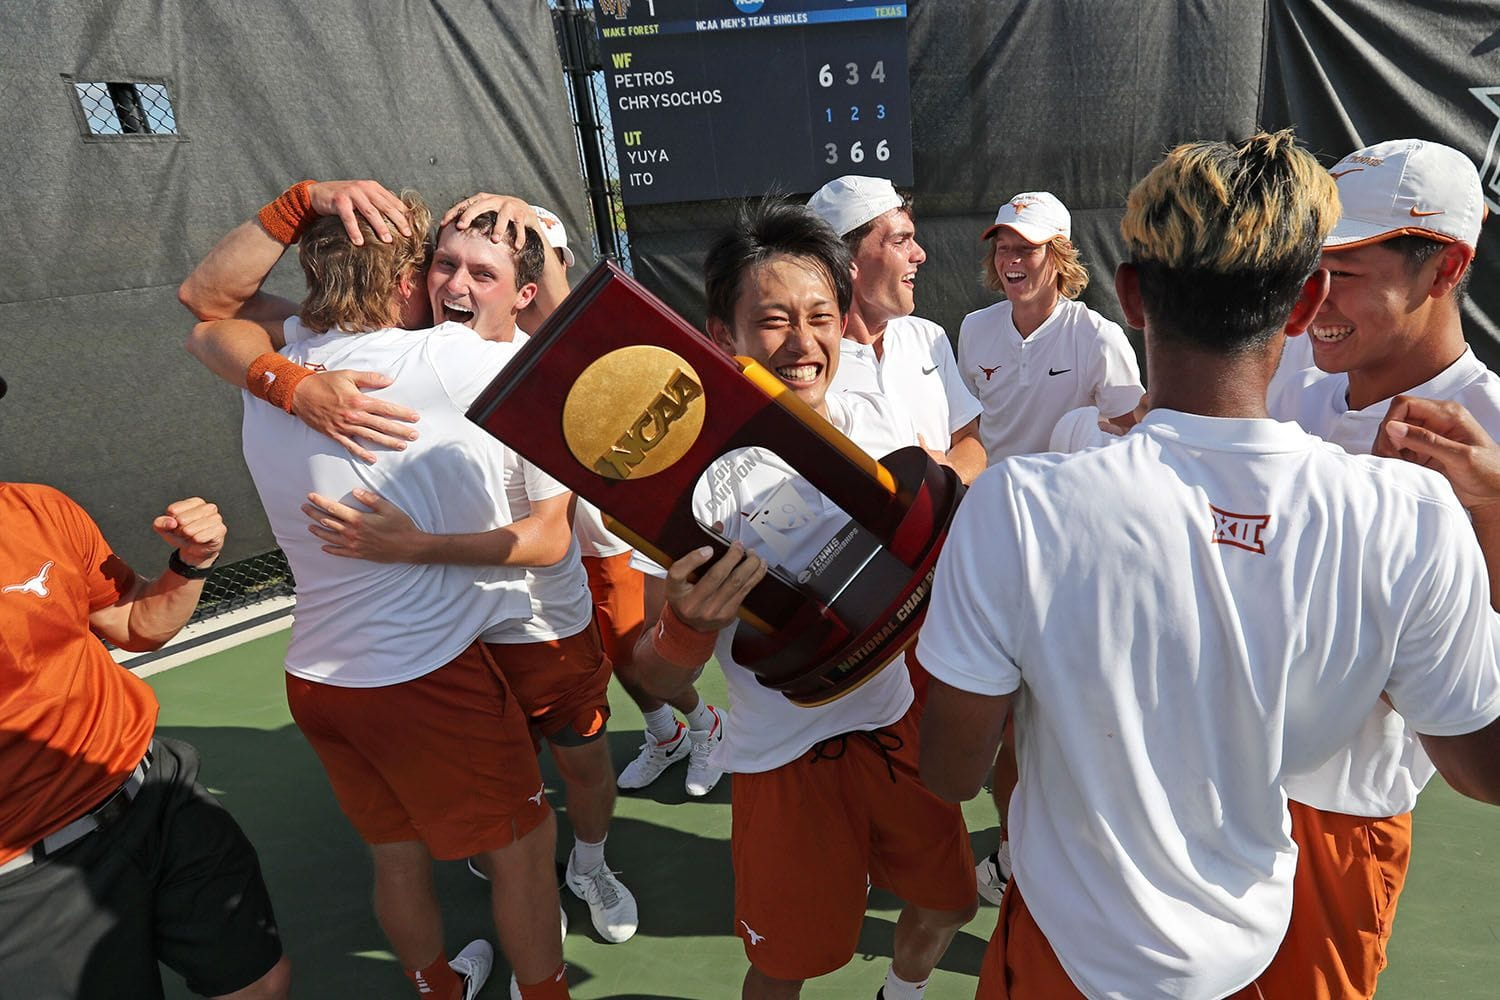 A team of  tennis players from a US university after a victory